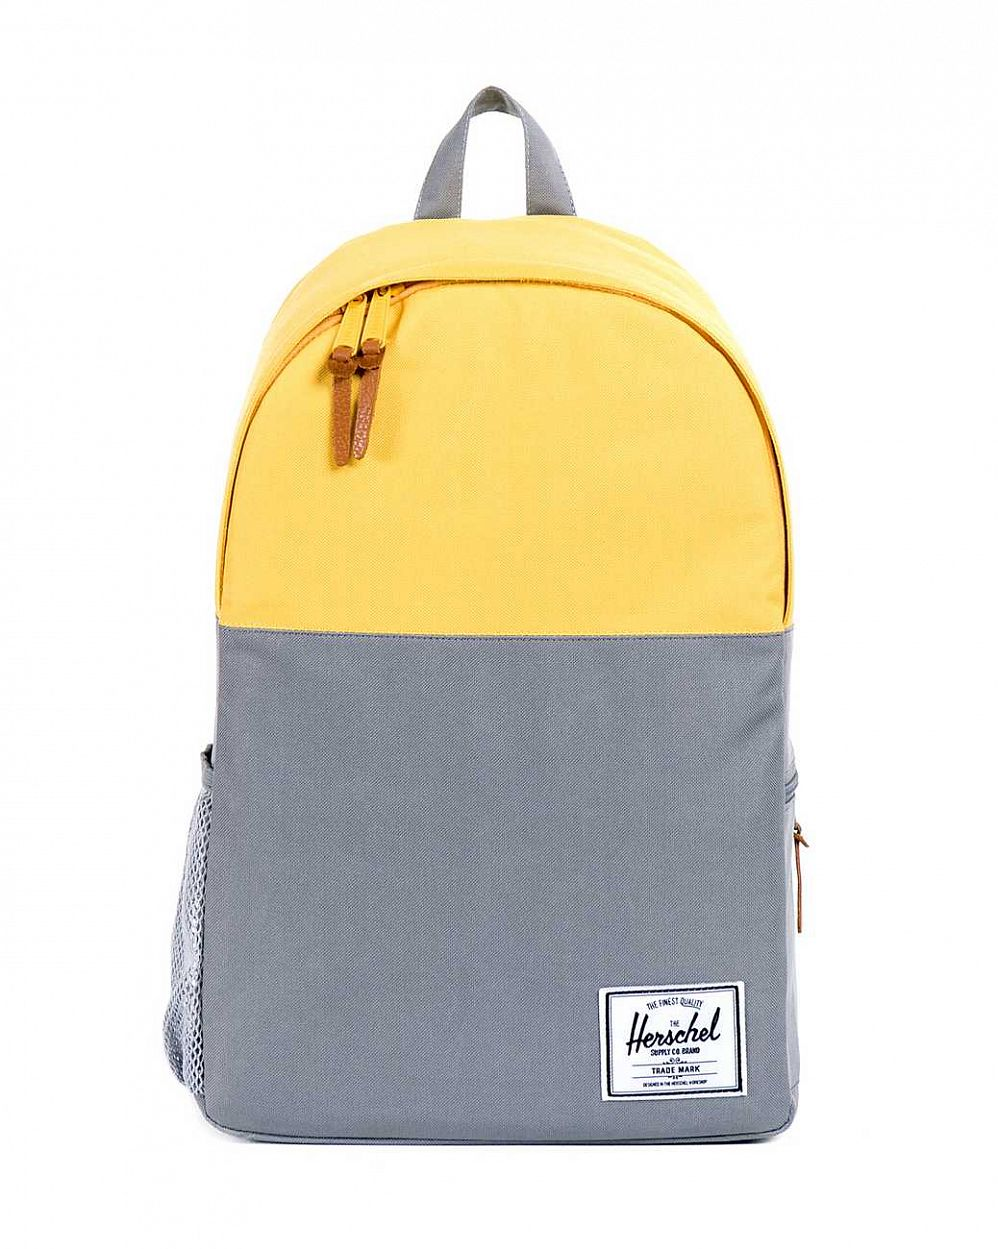 Рюкзак Herschel Jasper Grey Sunsoaked отзывы